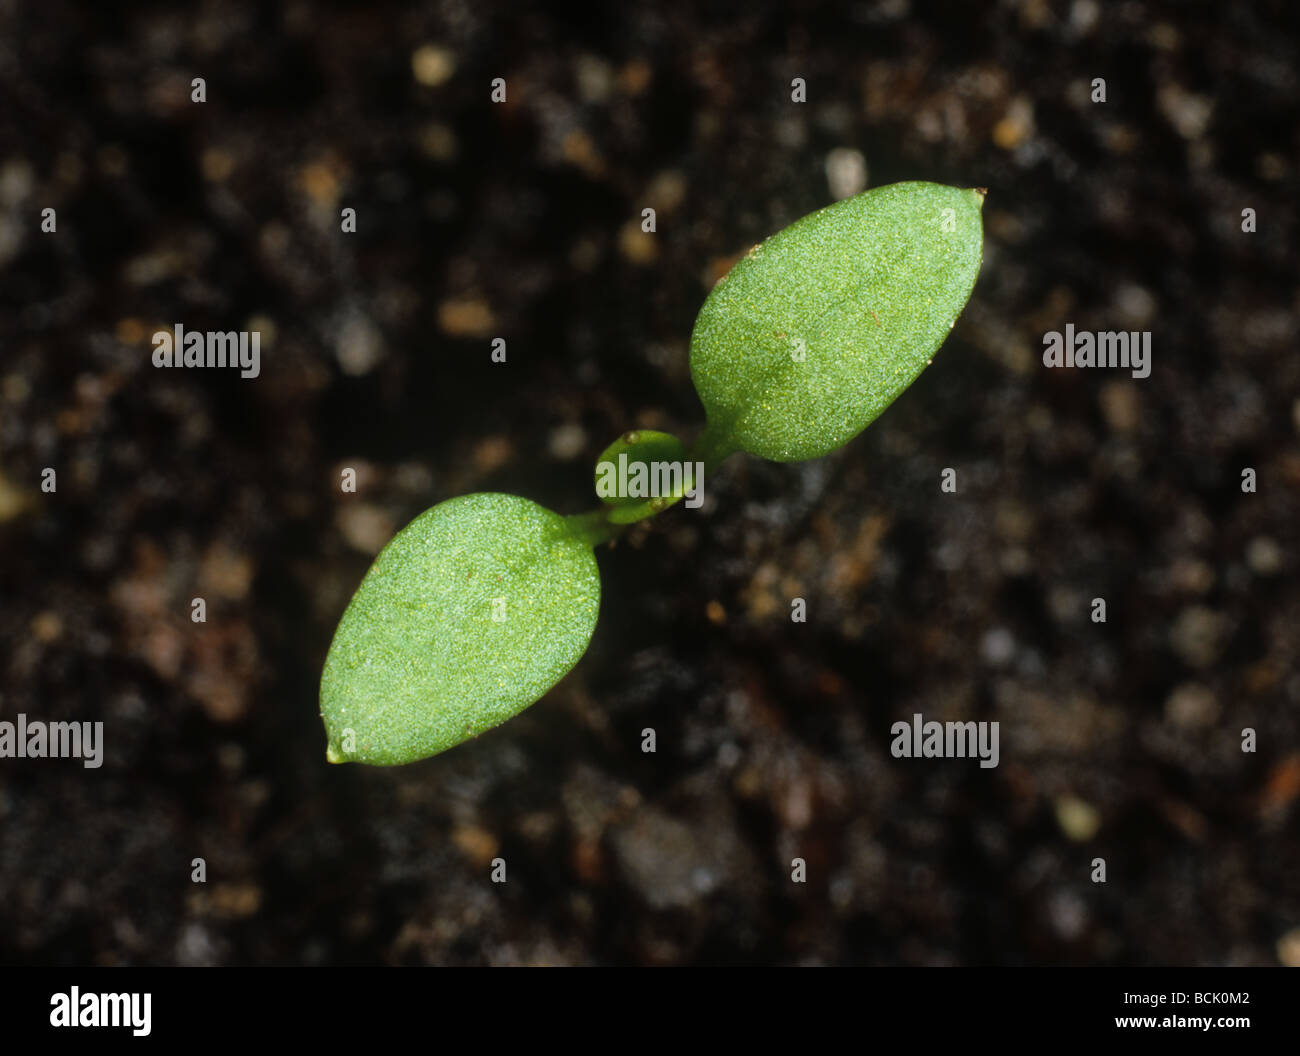 Chickweed Stellaria media seedling with cotyledon leaves only - Stock Image